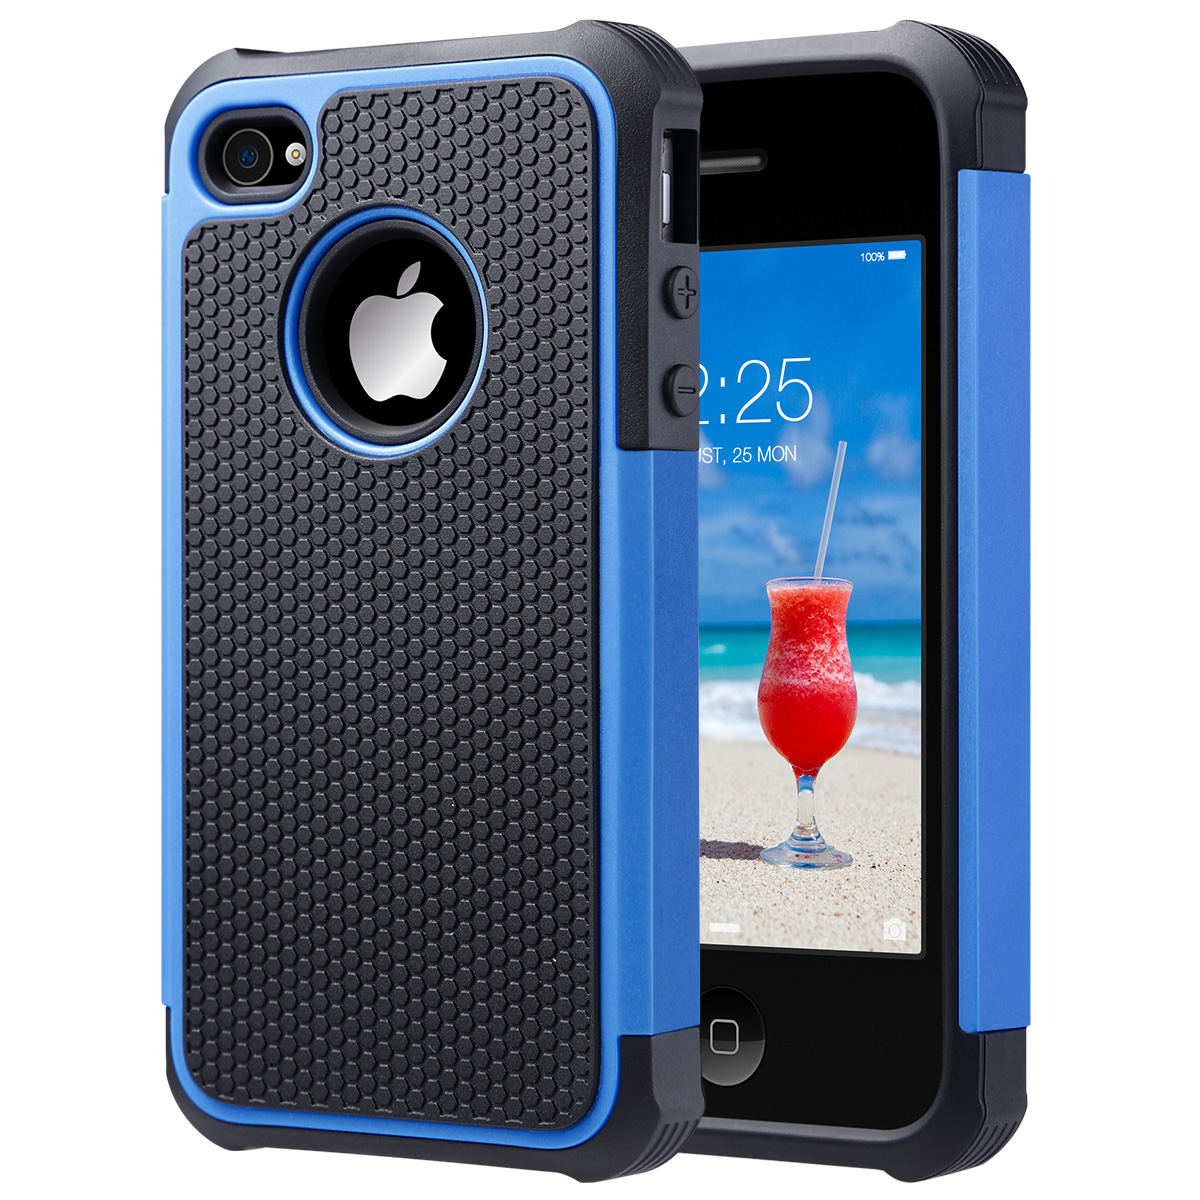 iPhone 4 Case, iPhone 4S Case, ULAK Hybrid Dual Layer Protective Case Cover with Hard Plastic and Soft Silicone for iPhone 4S & iPhone 4